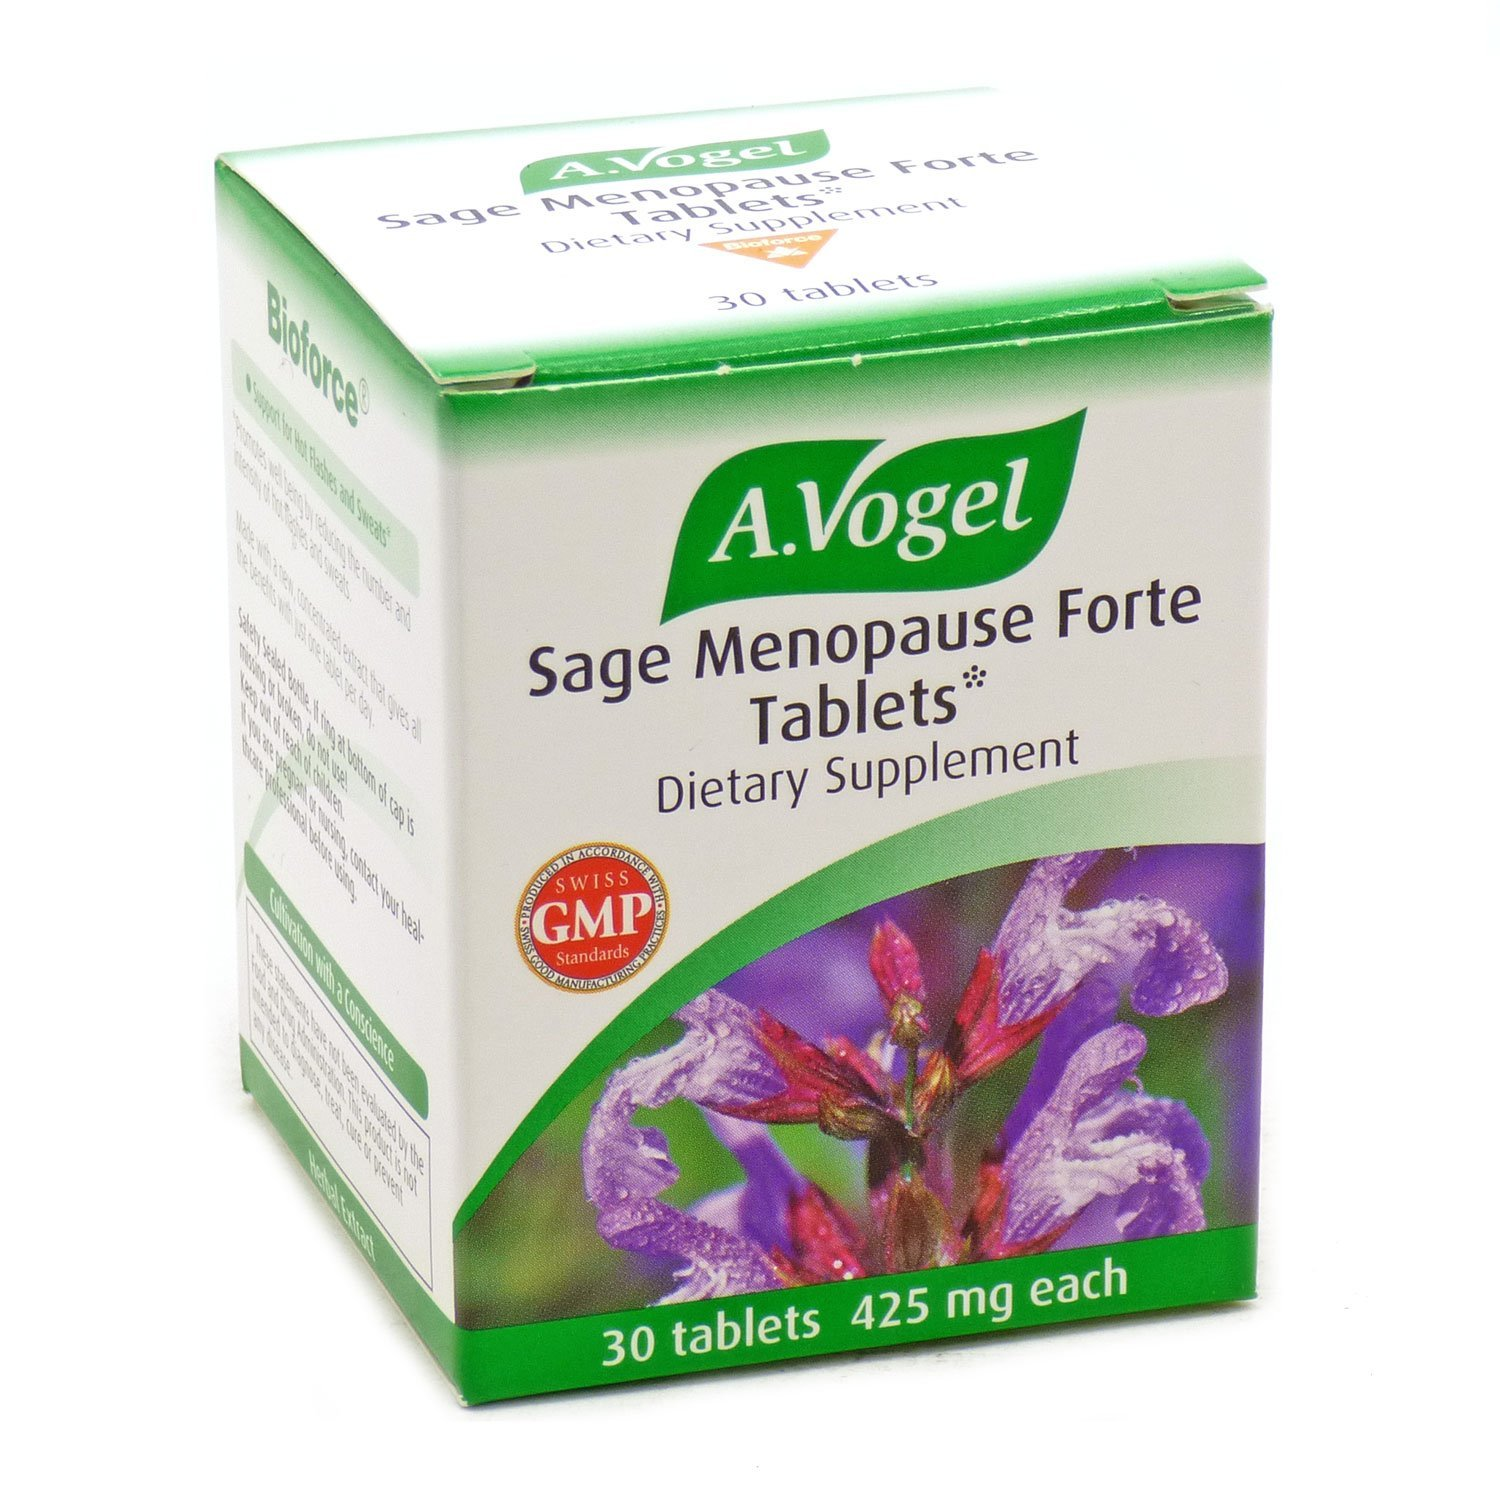 Sage in menopause and tides: how to take correctly, indications and contraindications 8